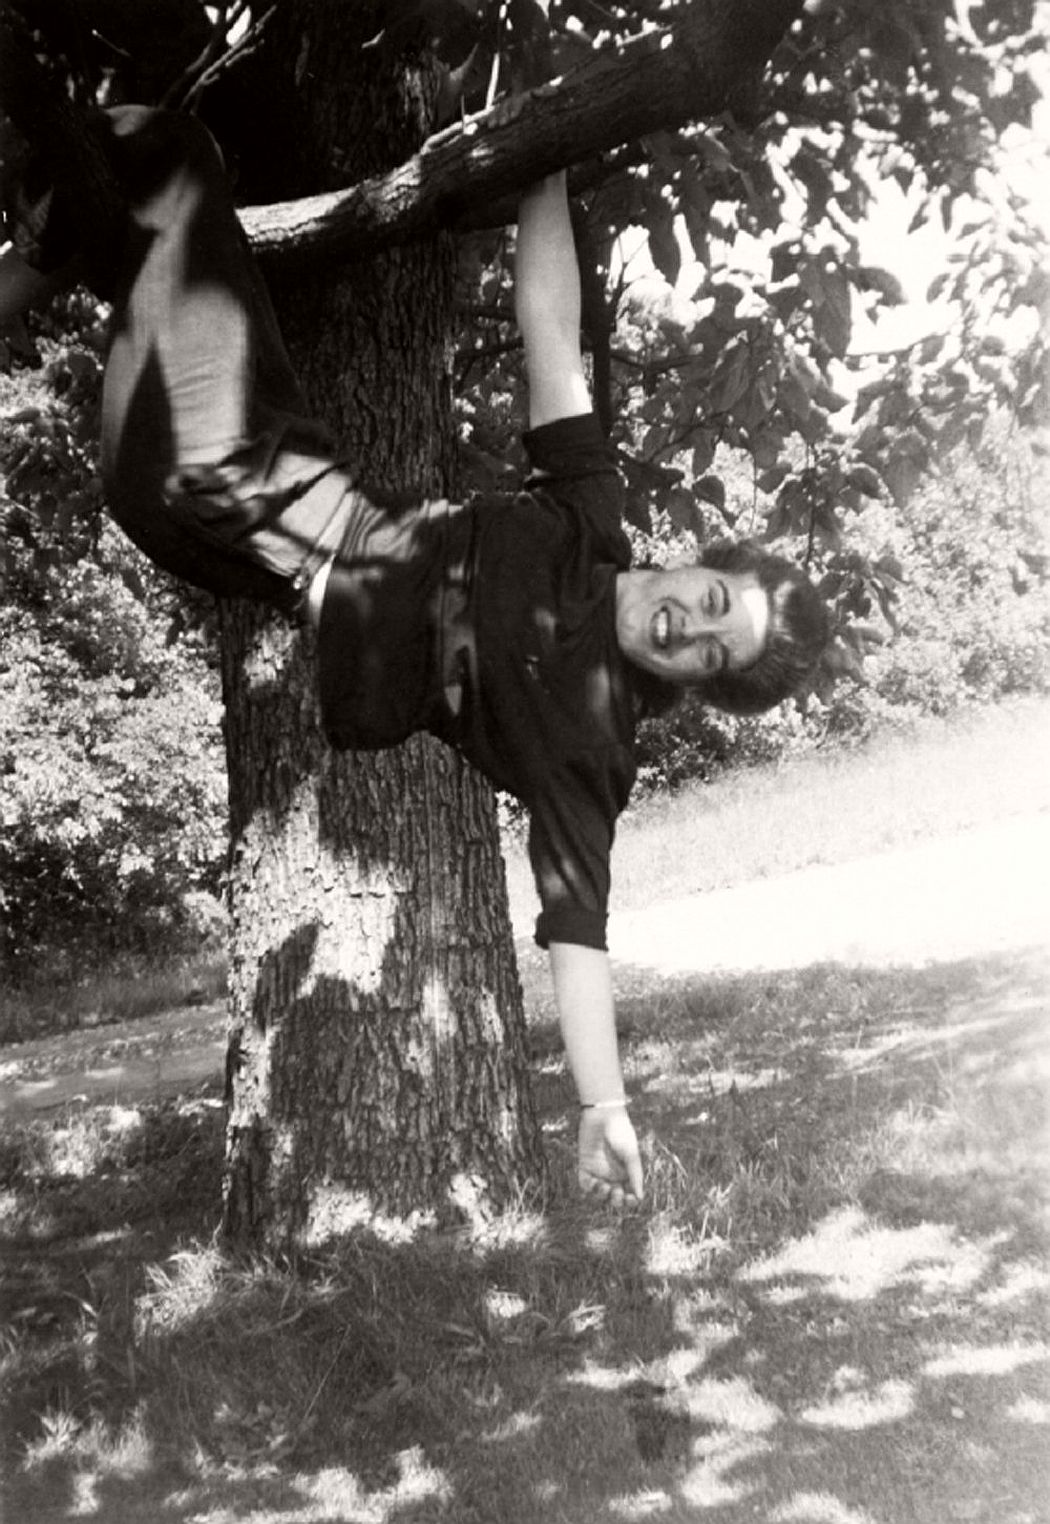 women-in-trees-hatje-cantz-02